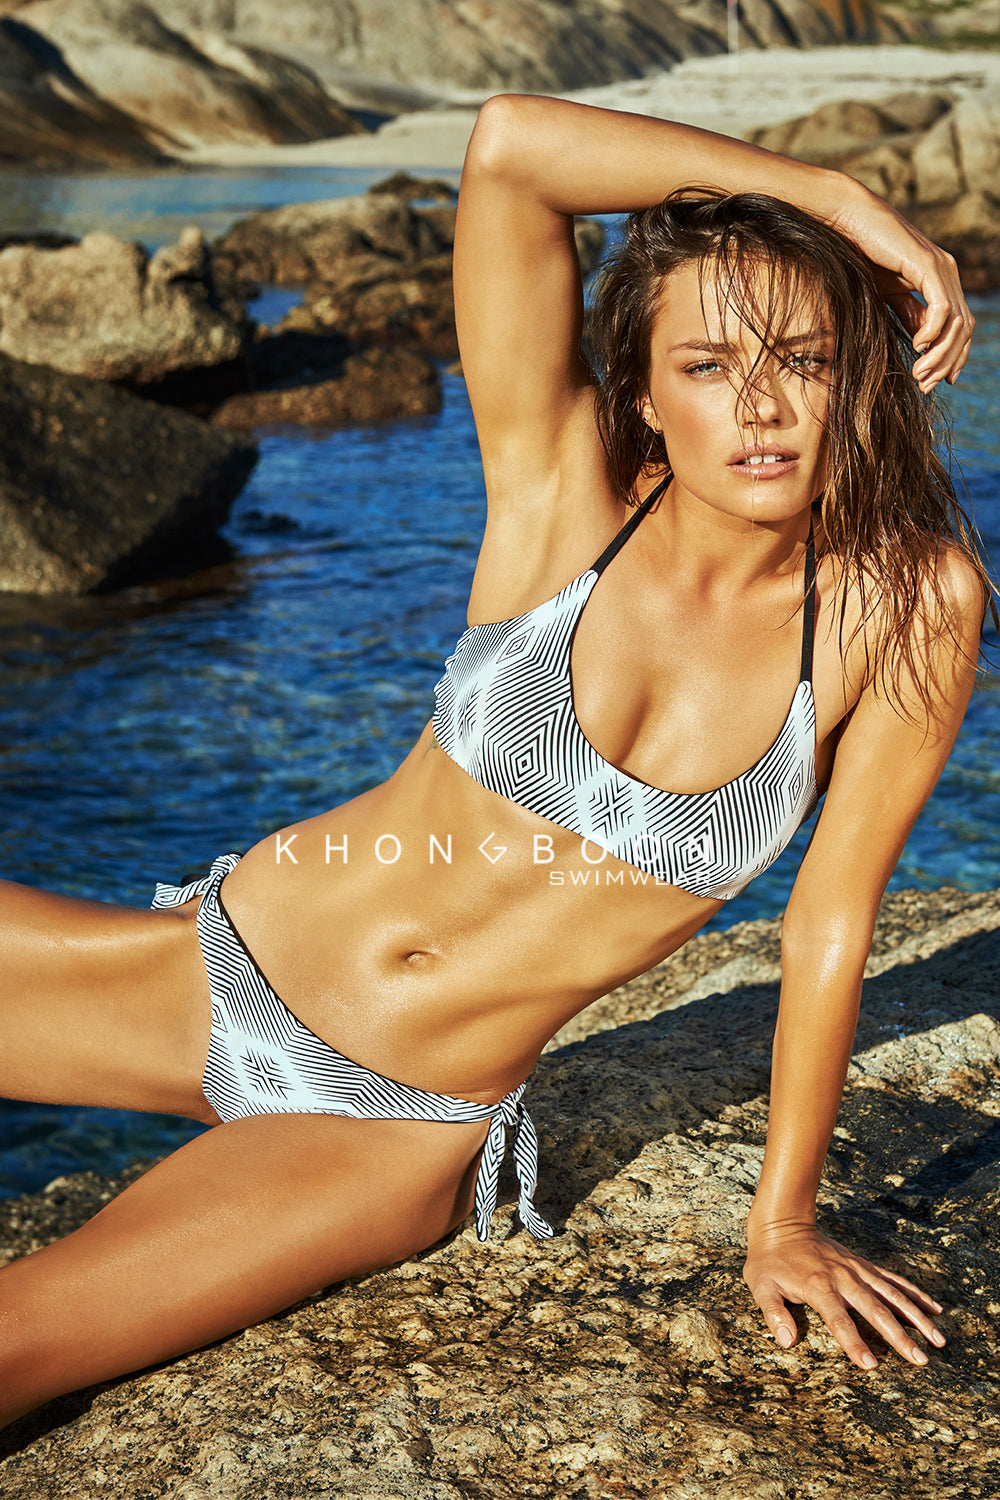 Khongboon Swimwear - Juzcar Bikini - Saucy Ladies Intimates